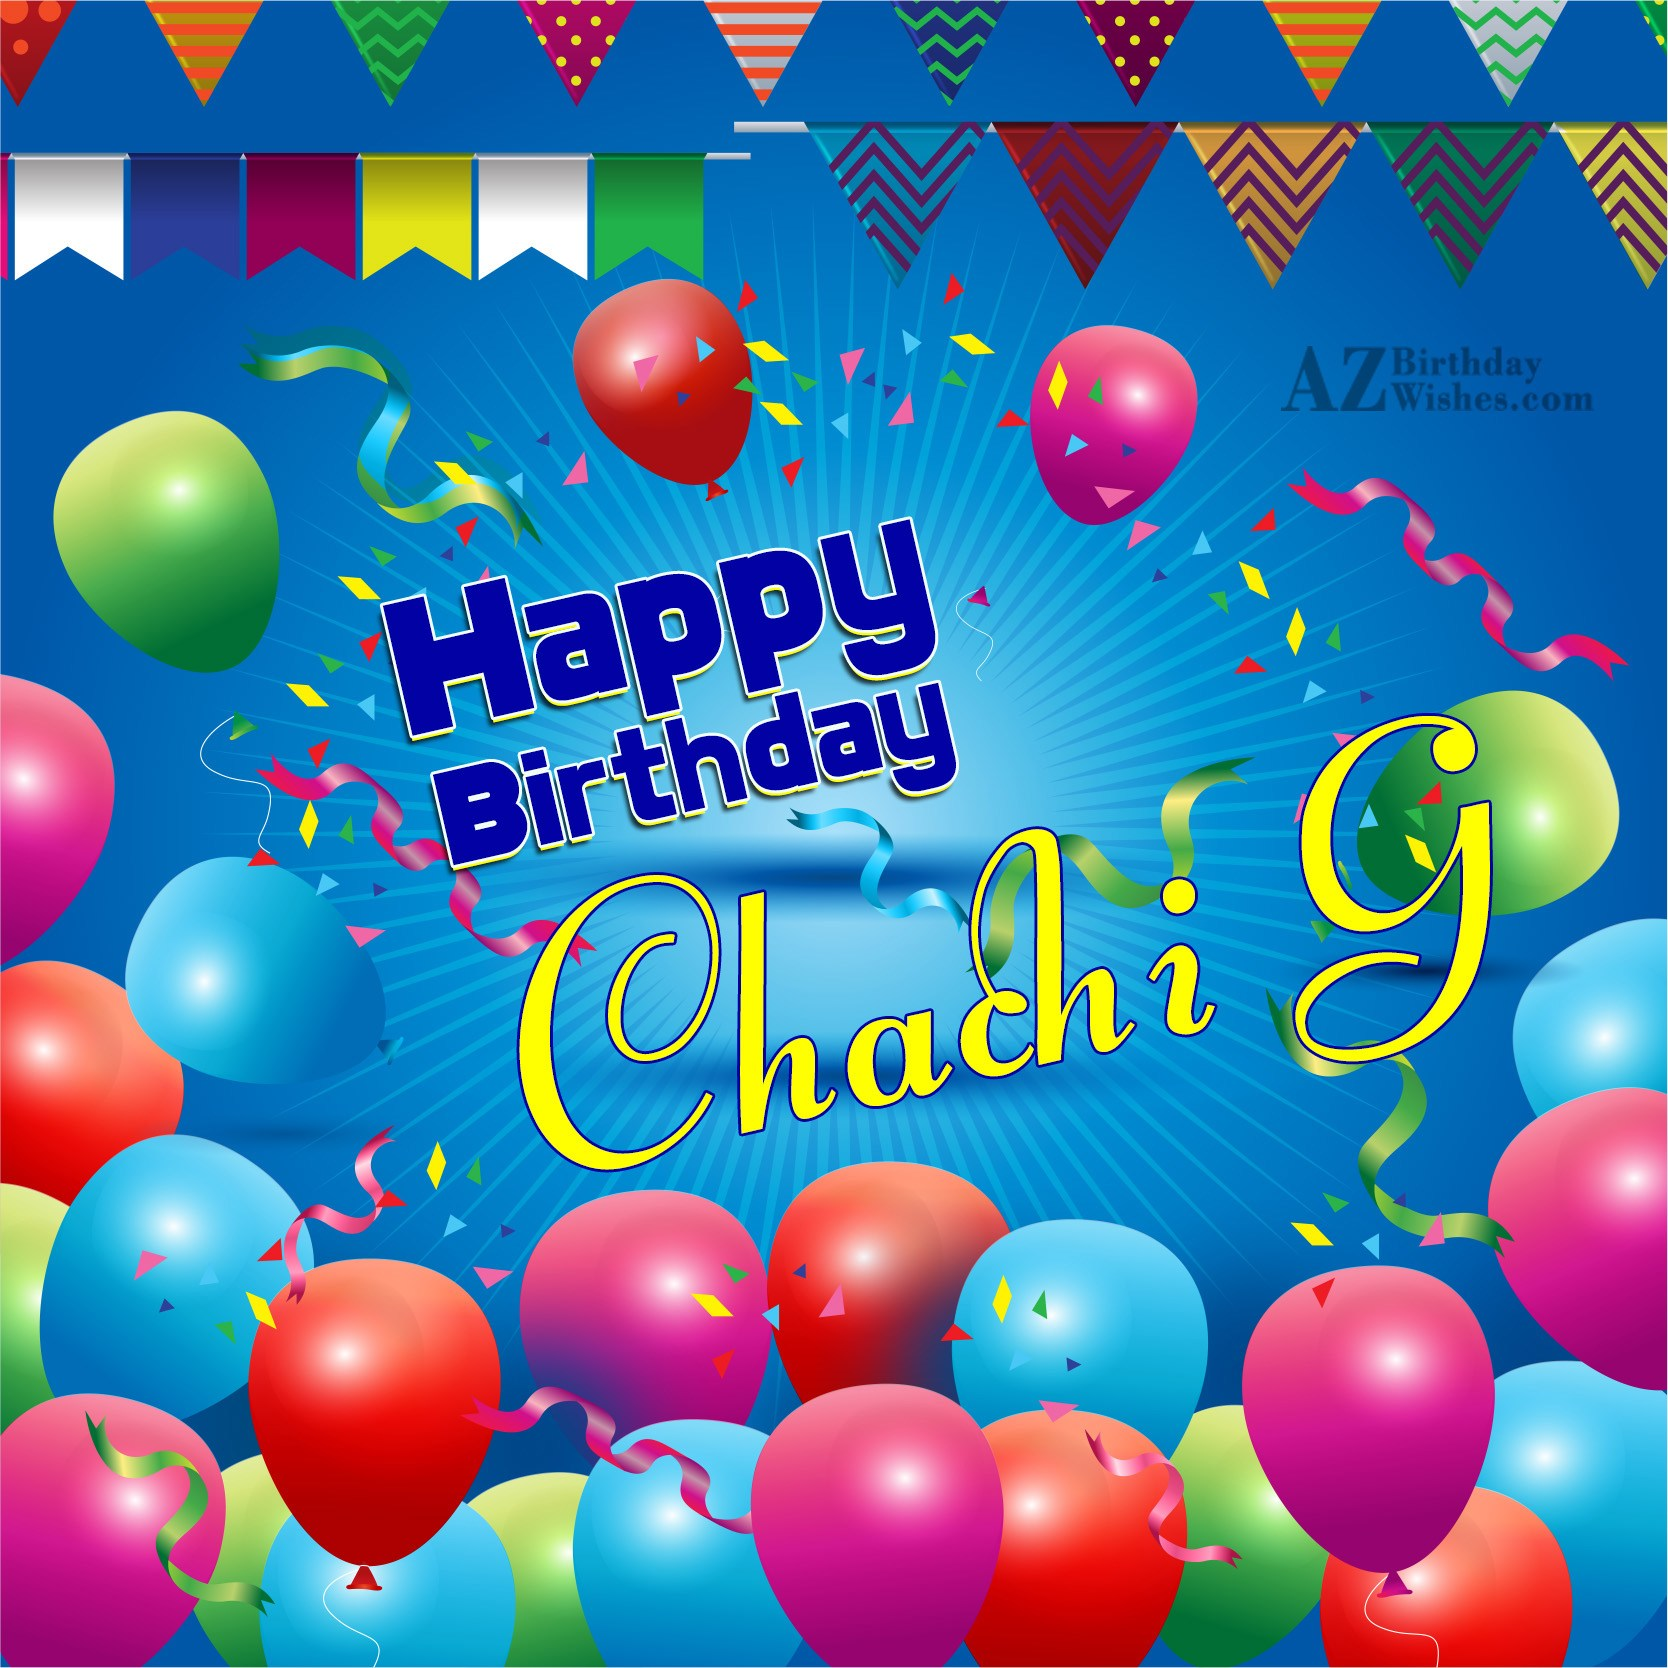 Happy Birthday To My Dear Chachi Ji